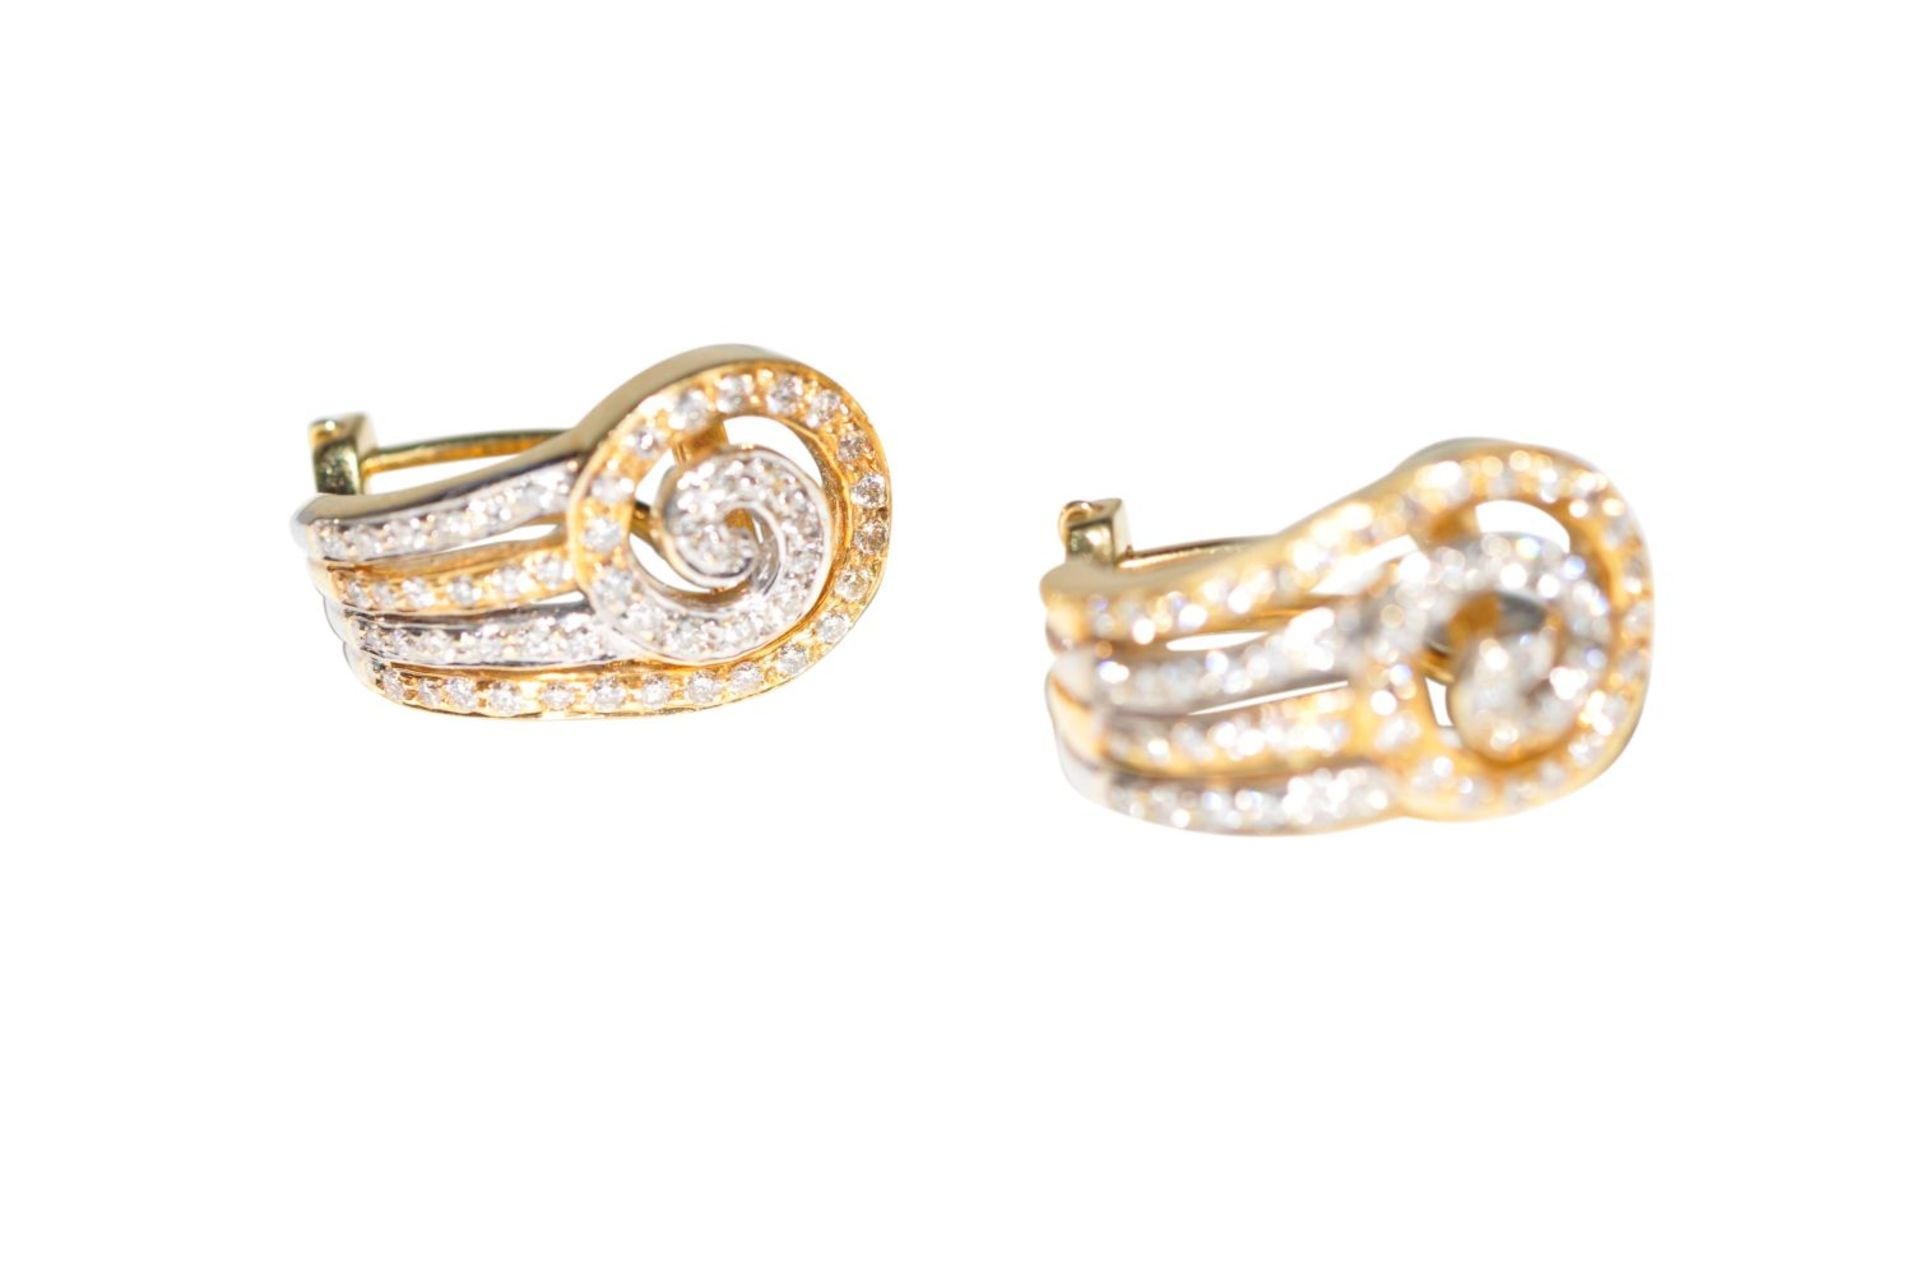 Los 107 - Ear clips18Kt white gold Ear-Clips with diamonds total carat weight approx. 1.12ct, total weight